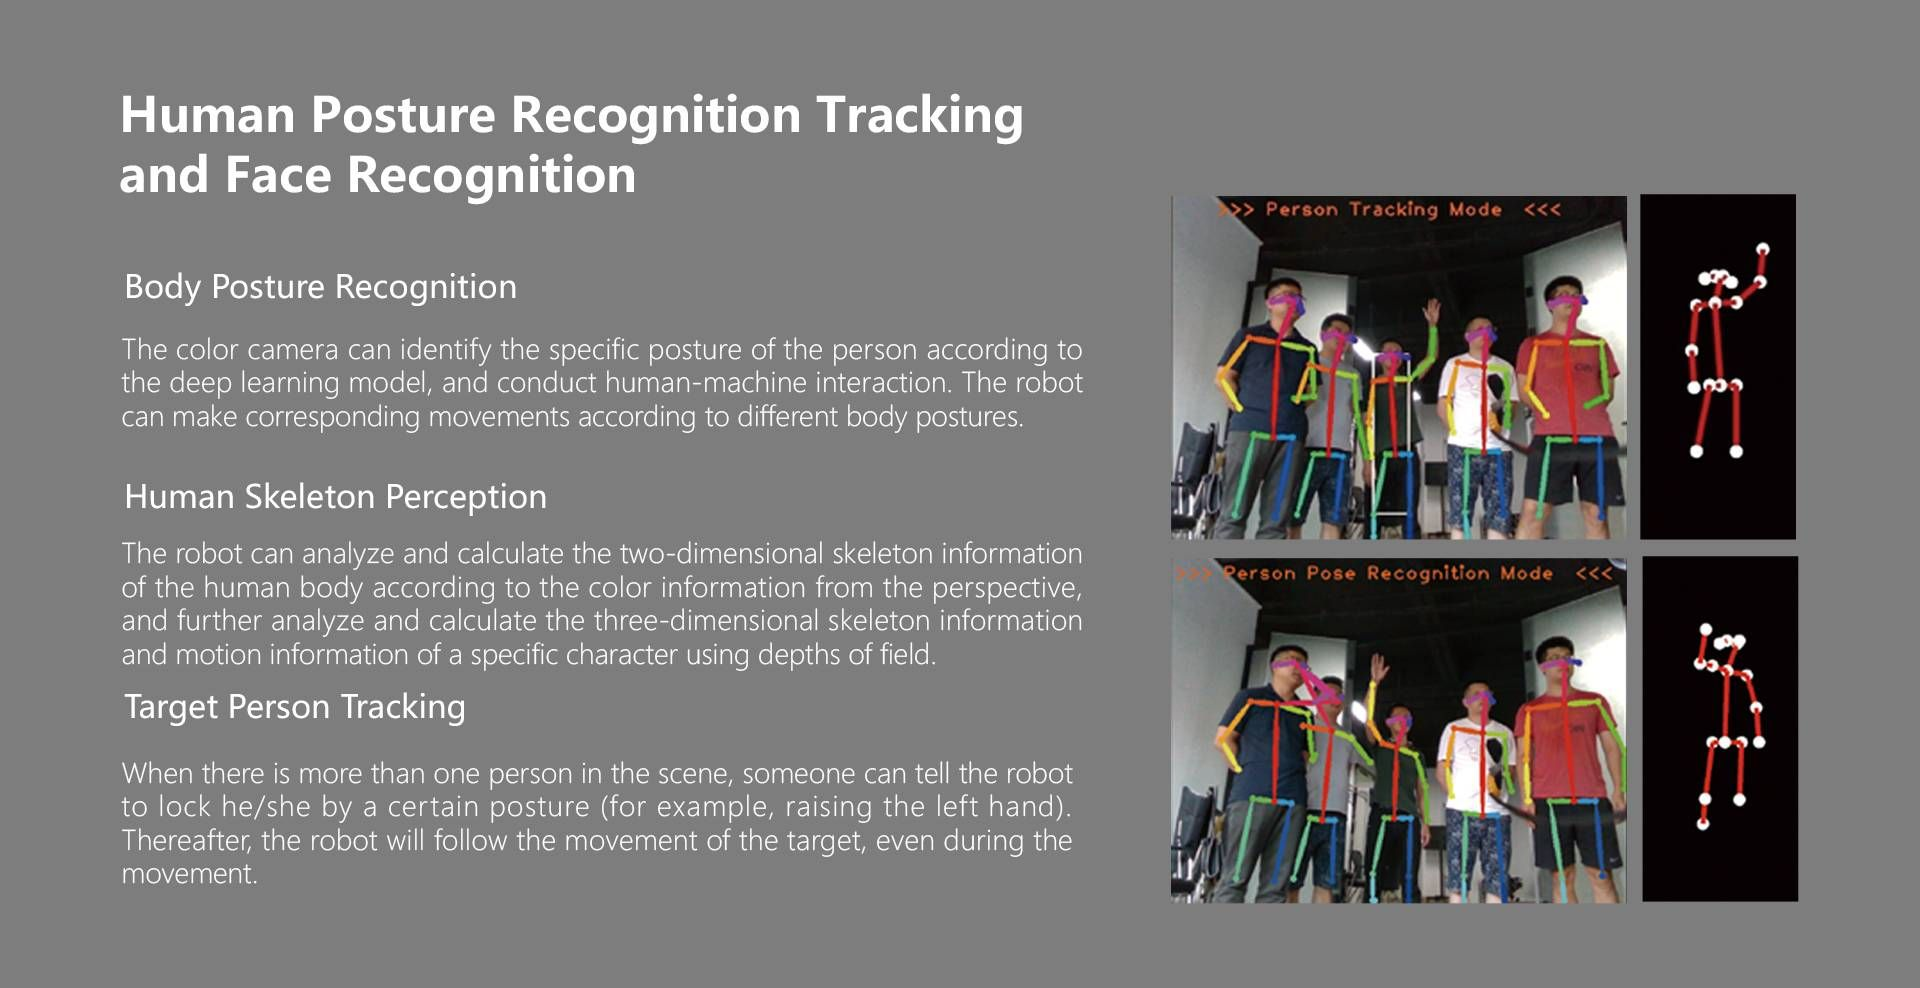 Human Posture Recognition Tracking and Face Recognition